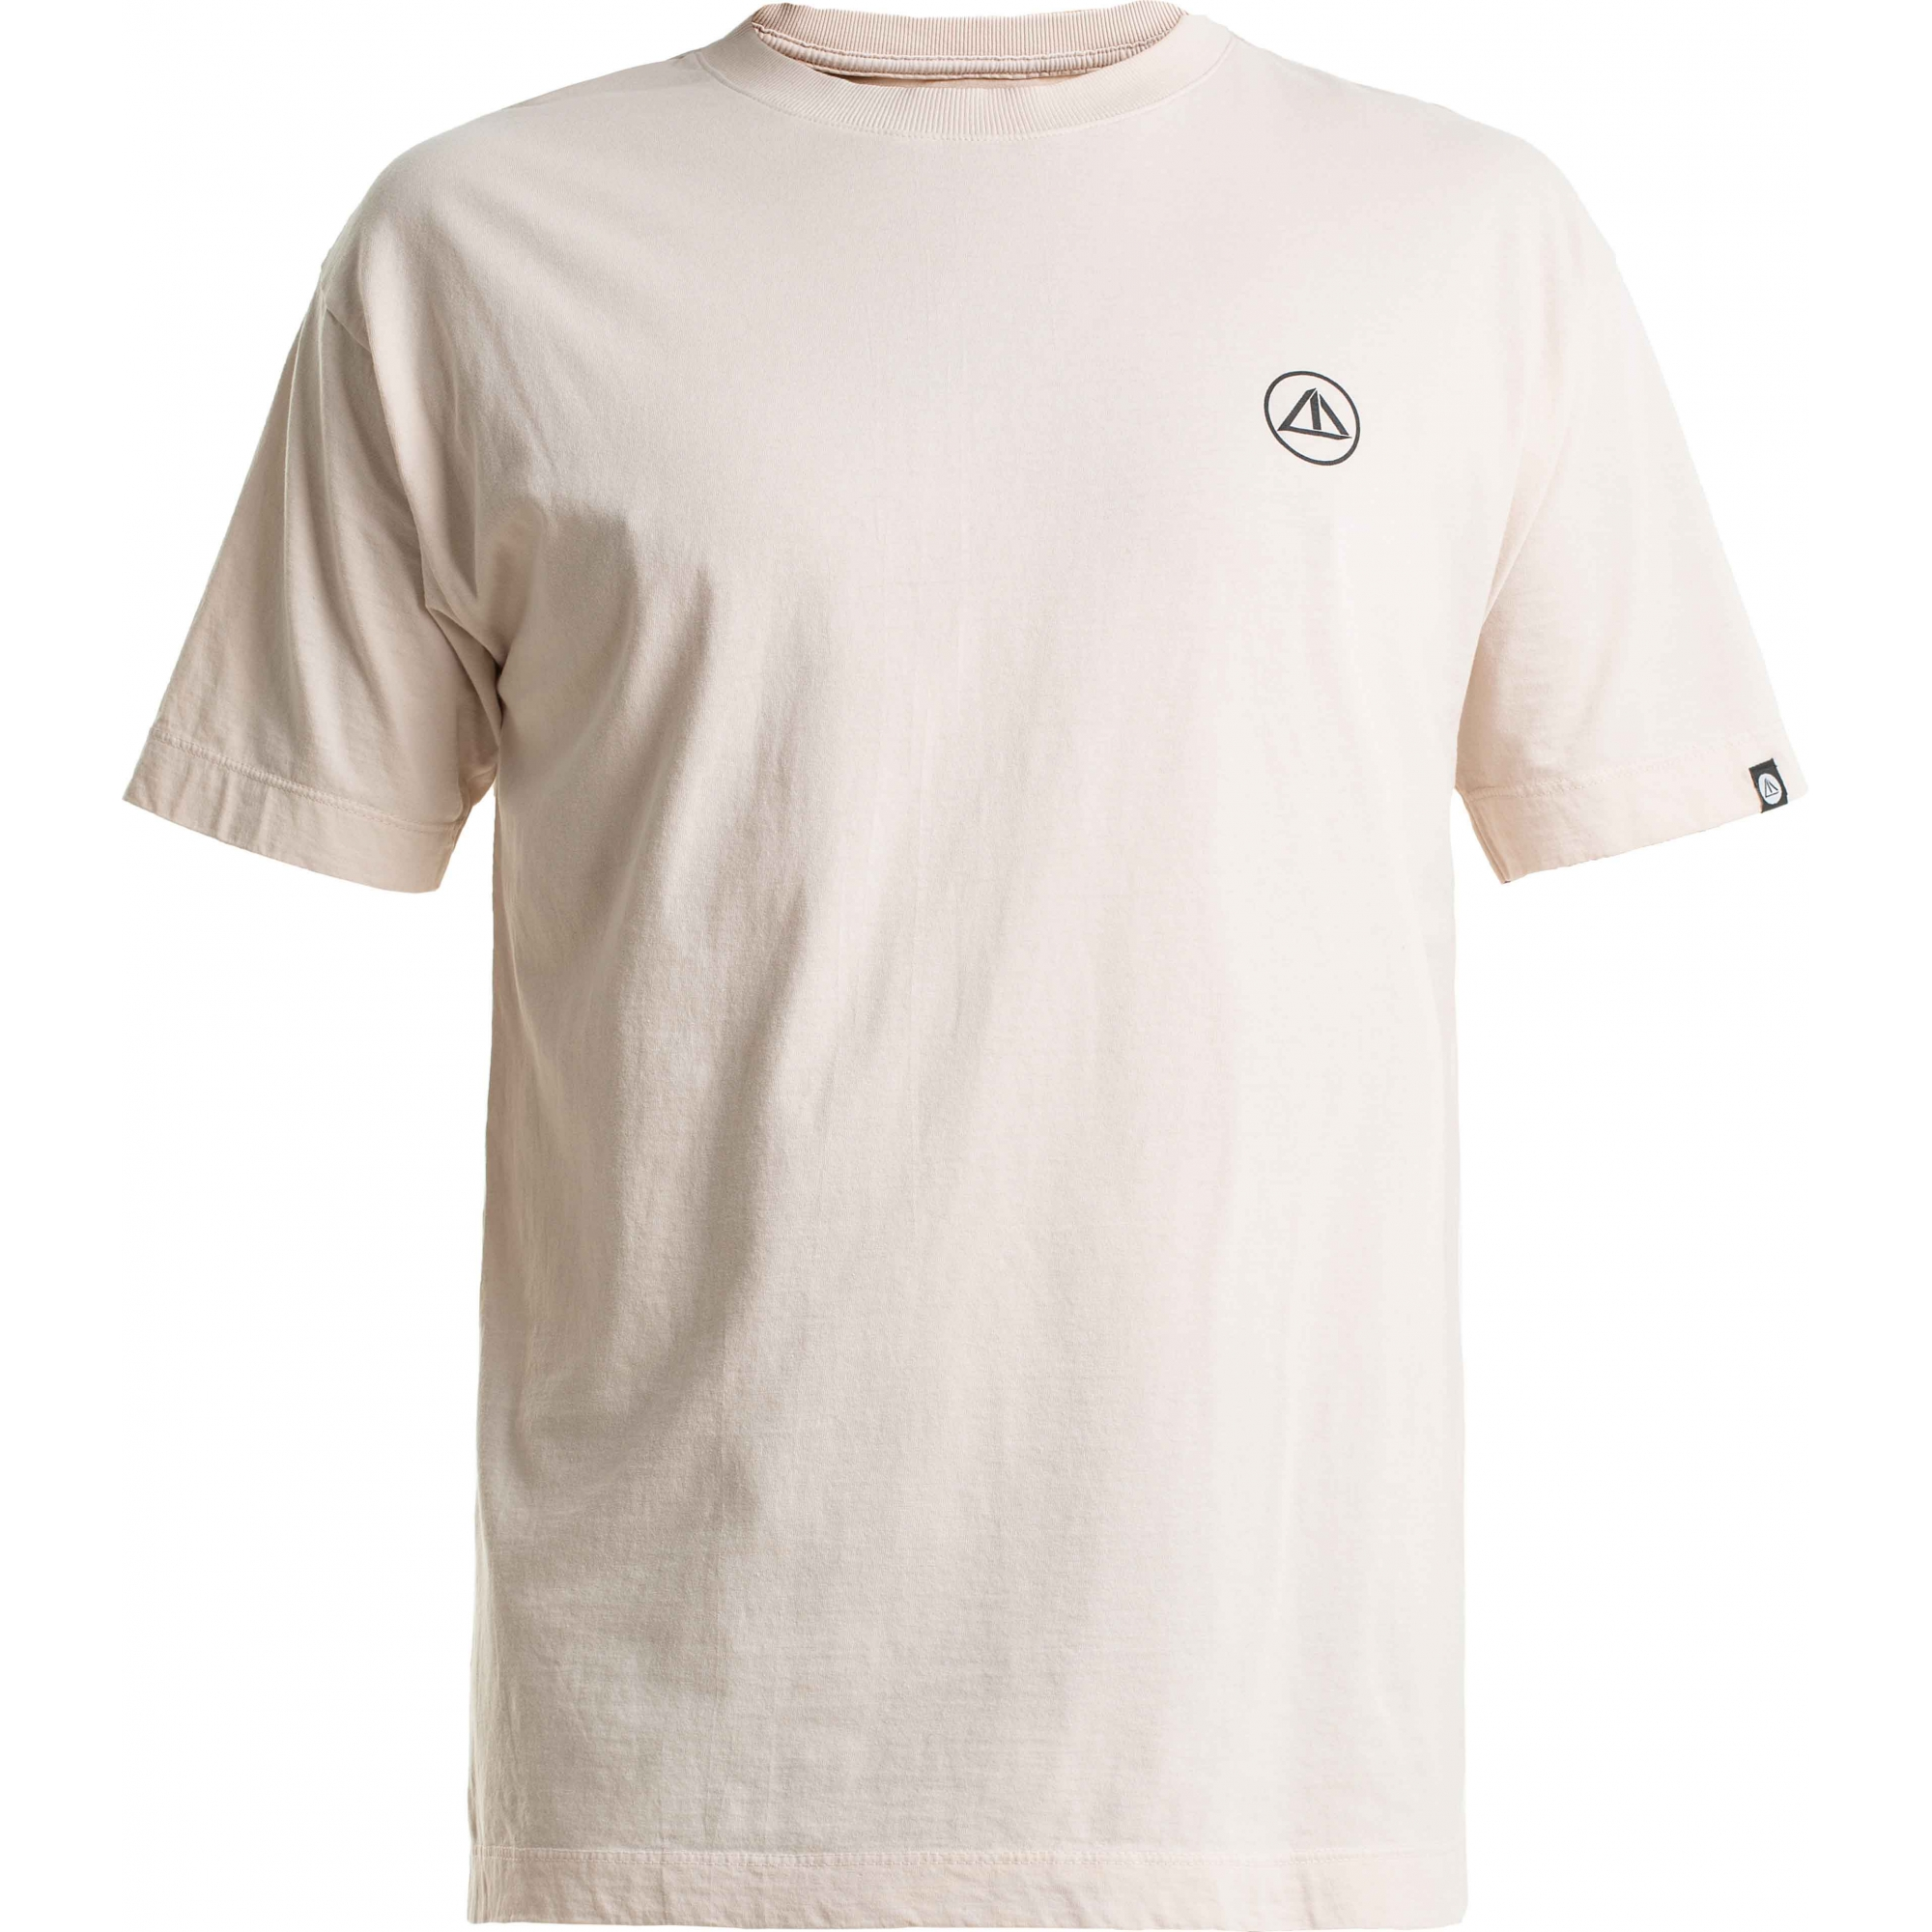 Camiseta Five Colors Off White